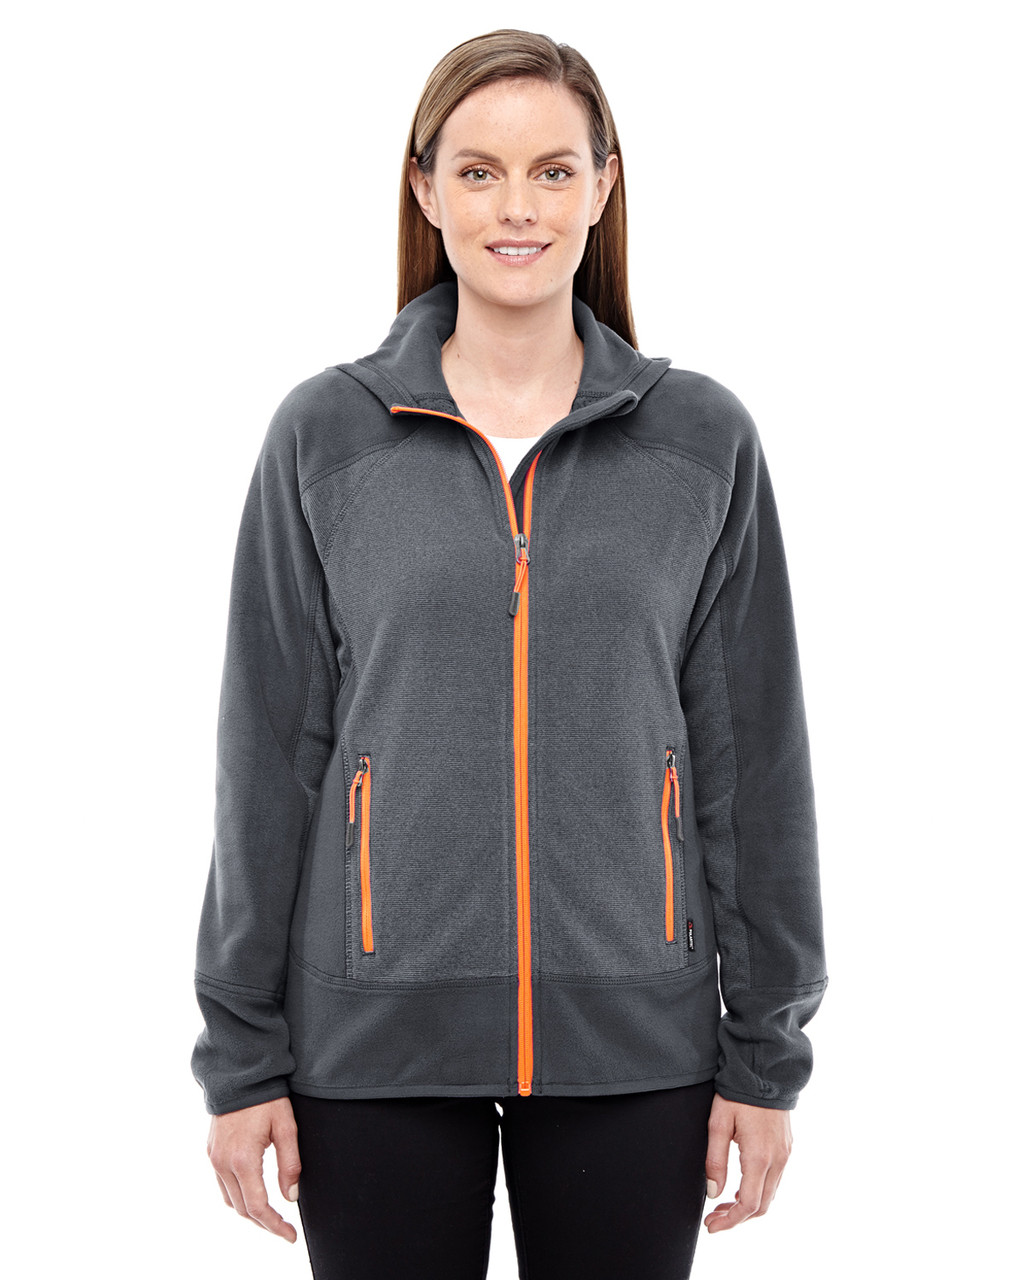 Carbon/Orange Soda 78810 North End Sport Red Vortex Polartec Active Fleece Jacket